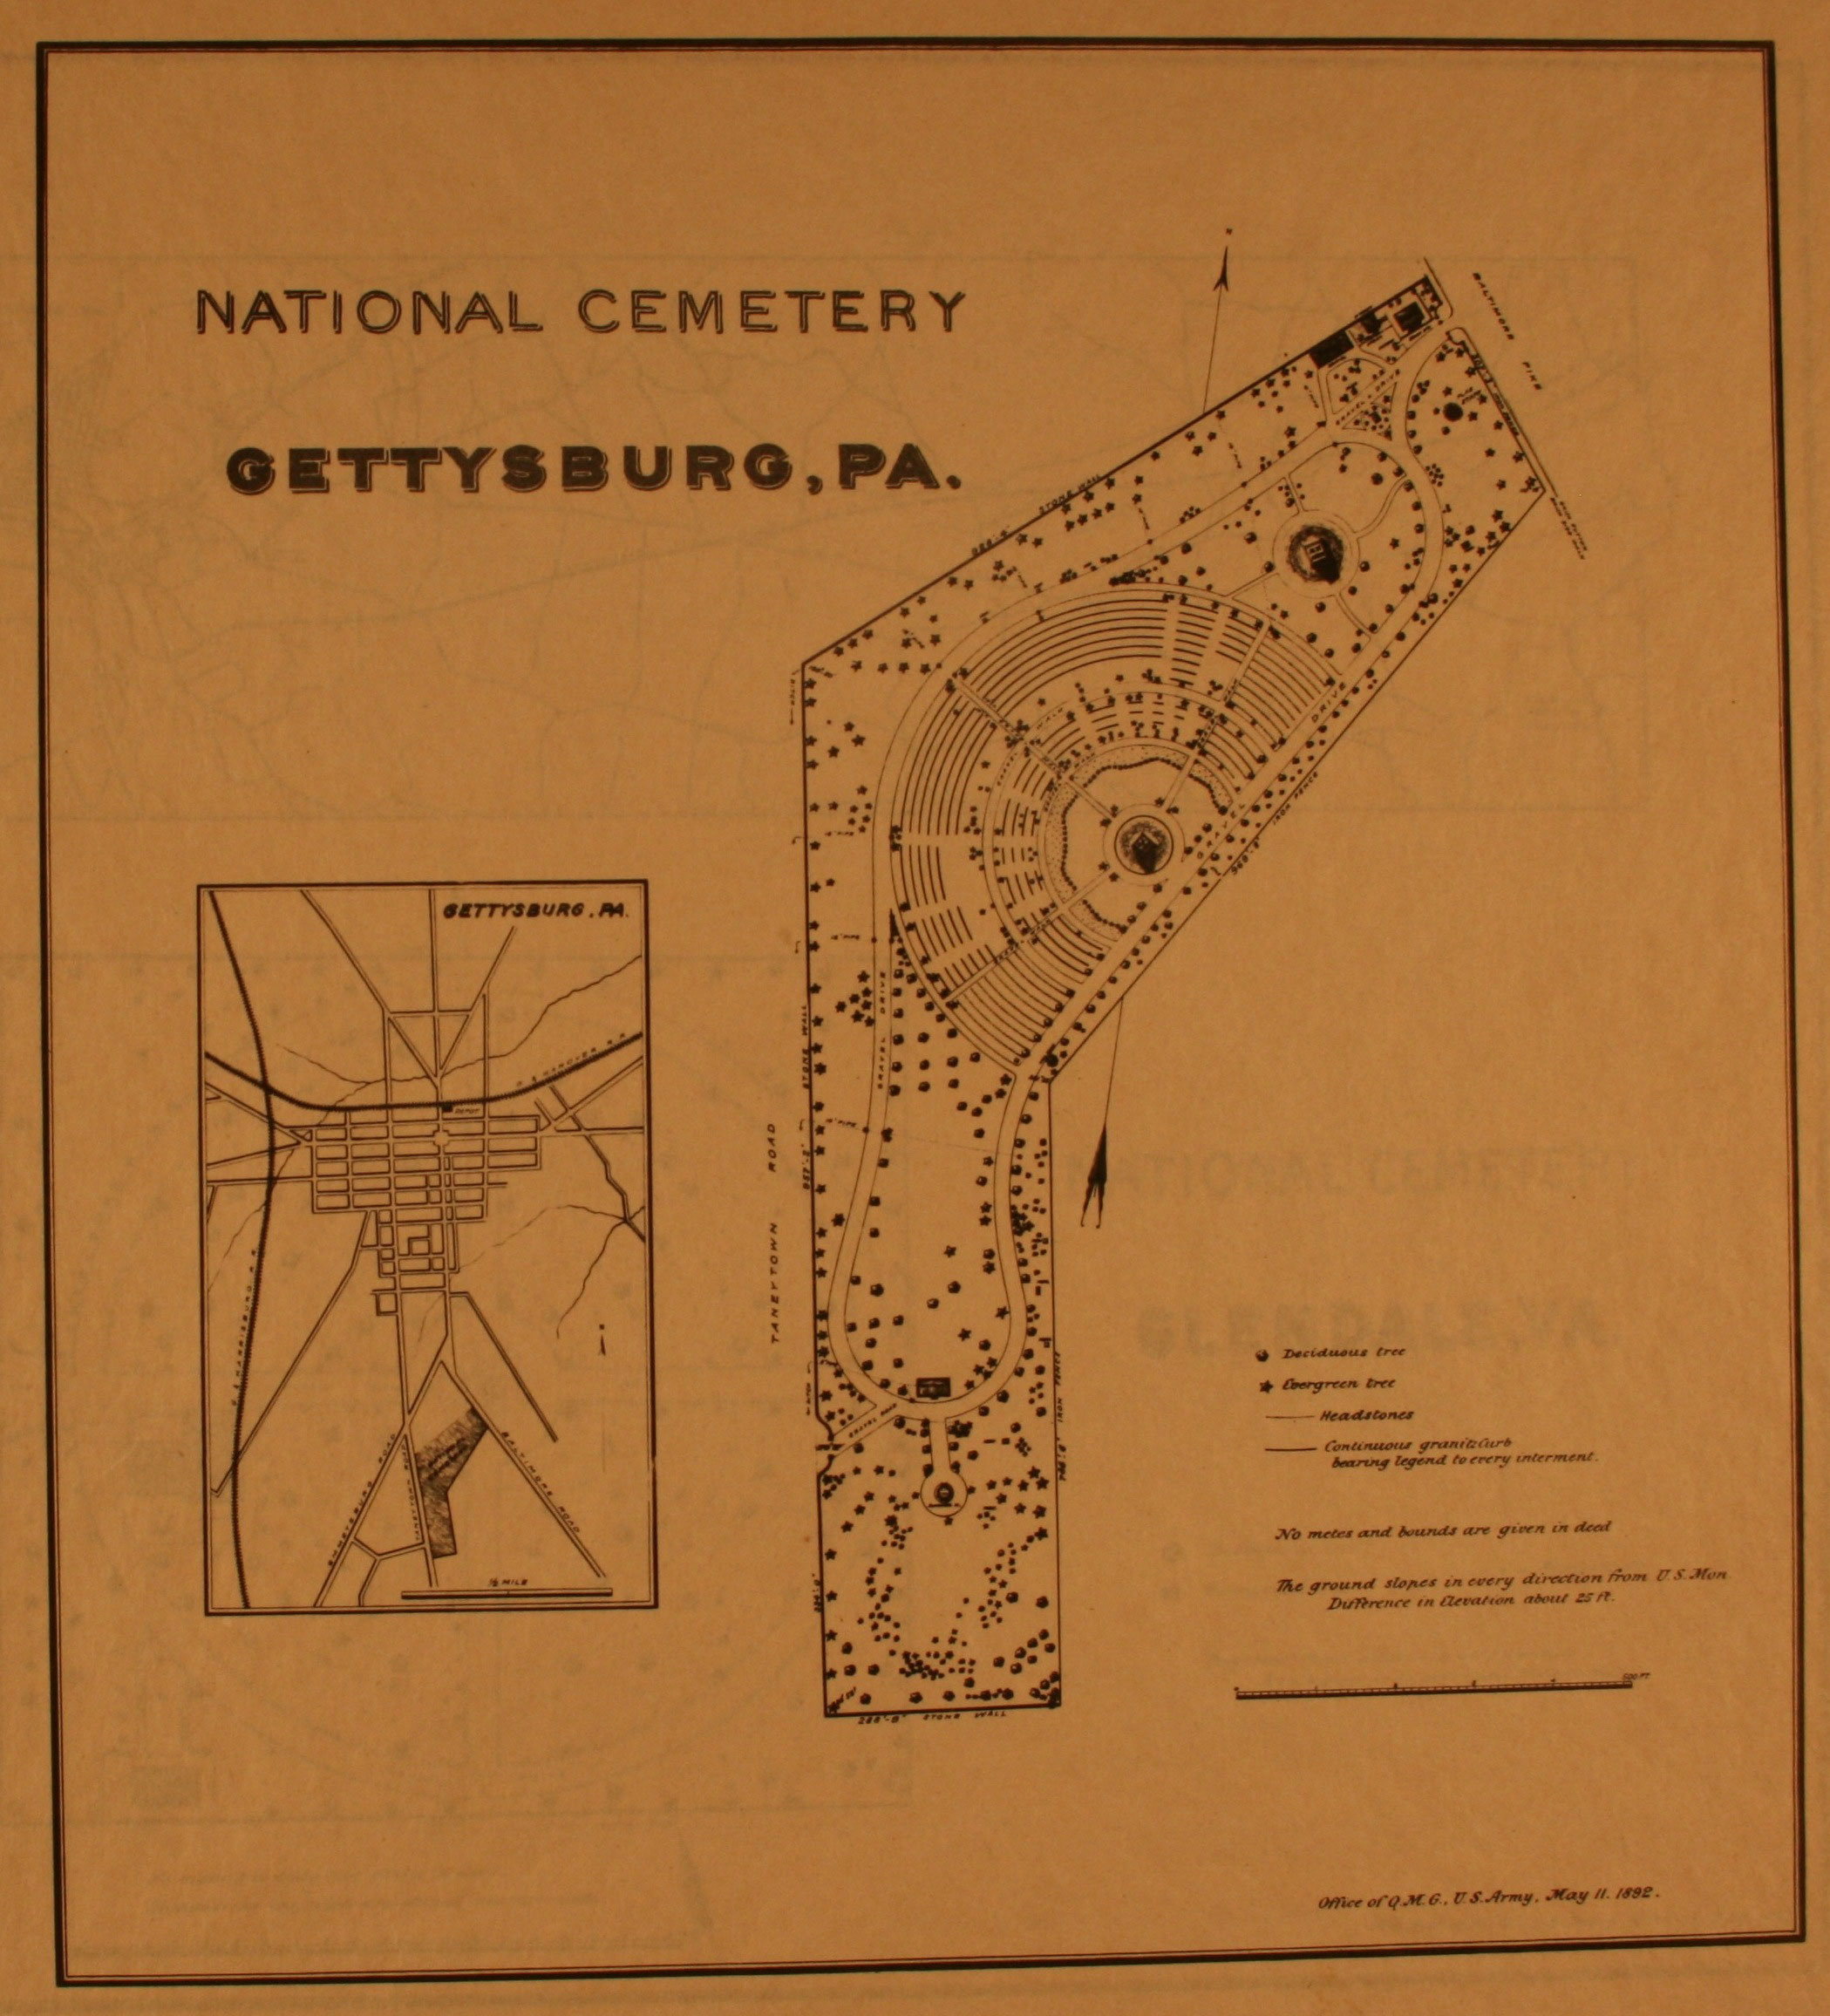 gettysburg national cemetery civil war era national cemeteries a  1893 site plan of gettysburg national cemetery courtesy of the national archives and records administration click on image to enlarge